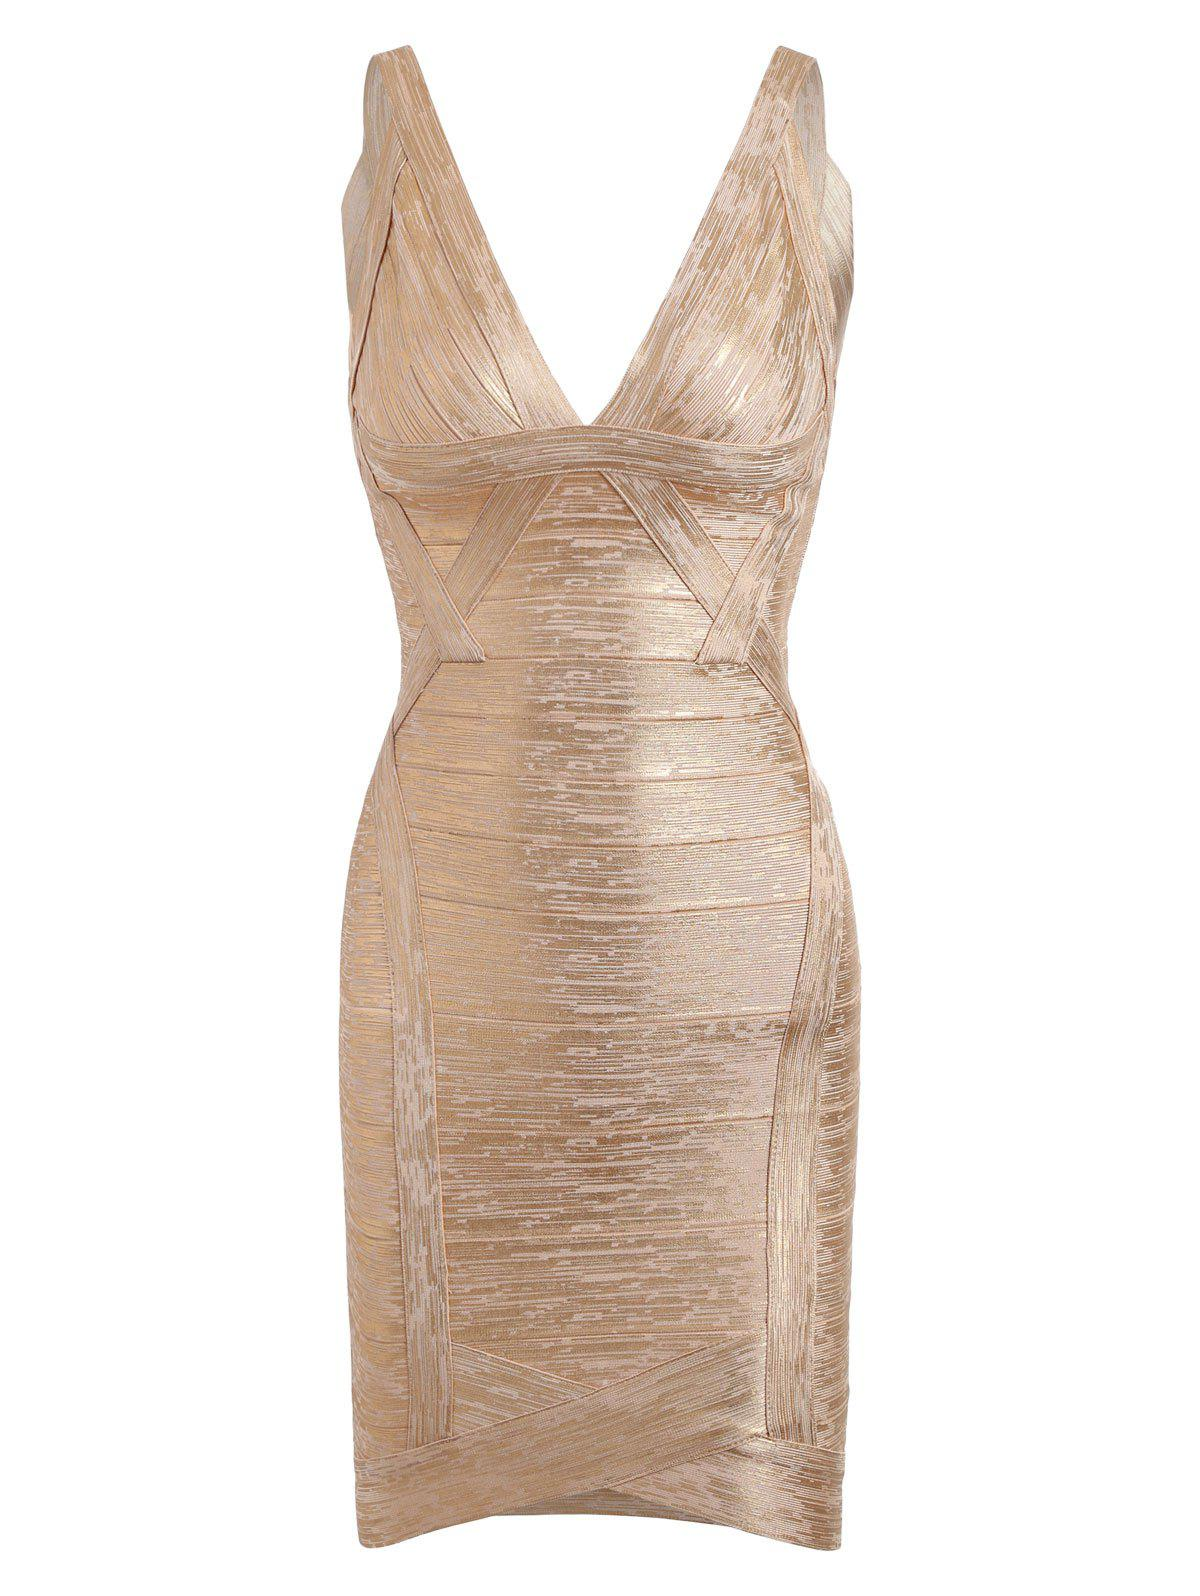 V Neck Bronzing Club Bandage Dress - GOLDEN S